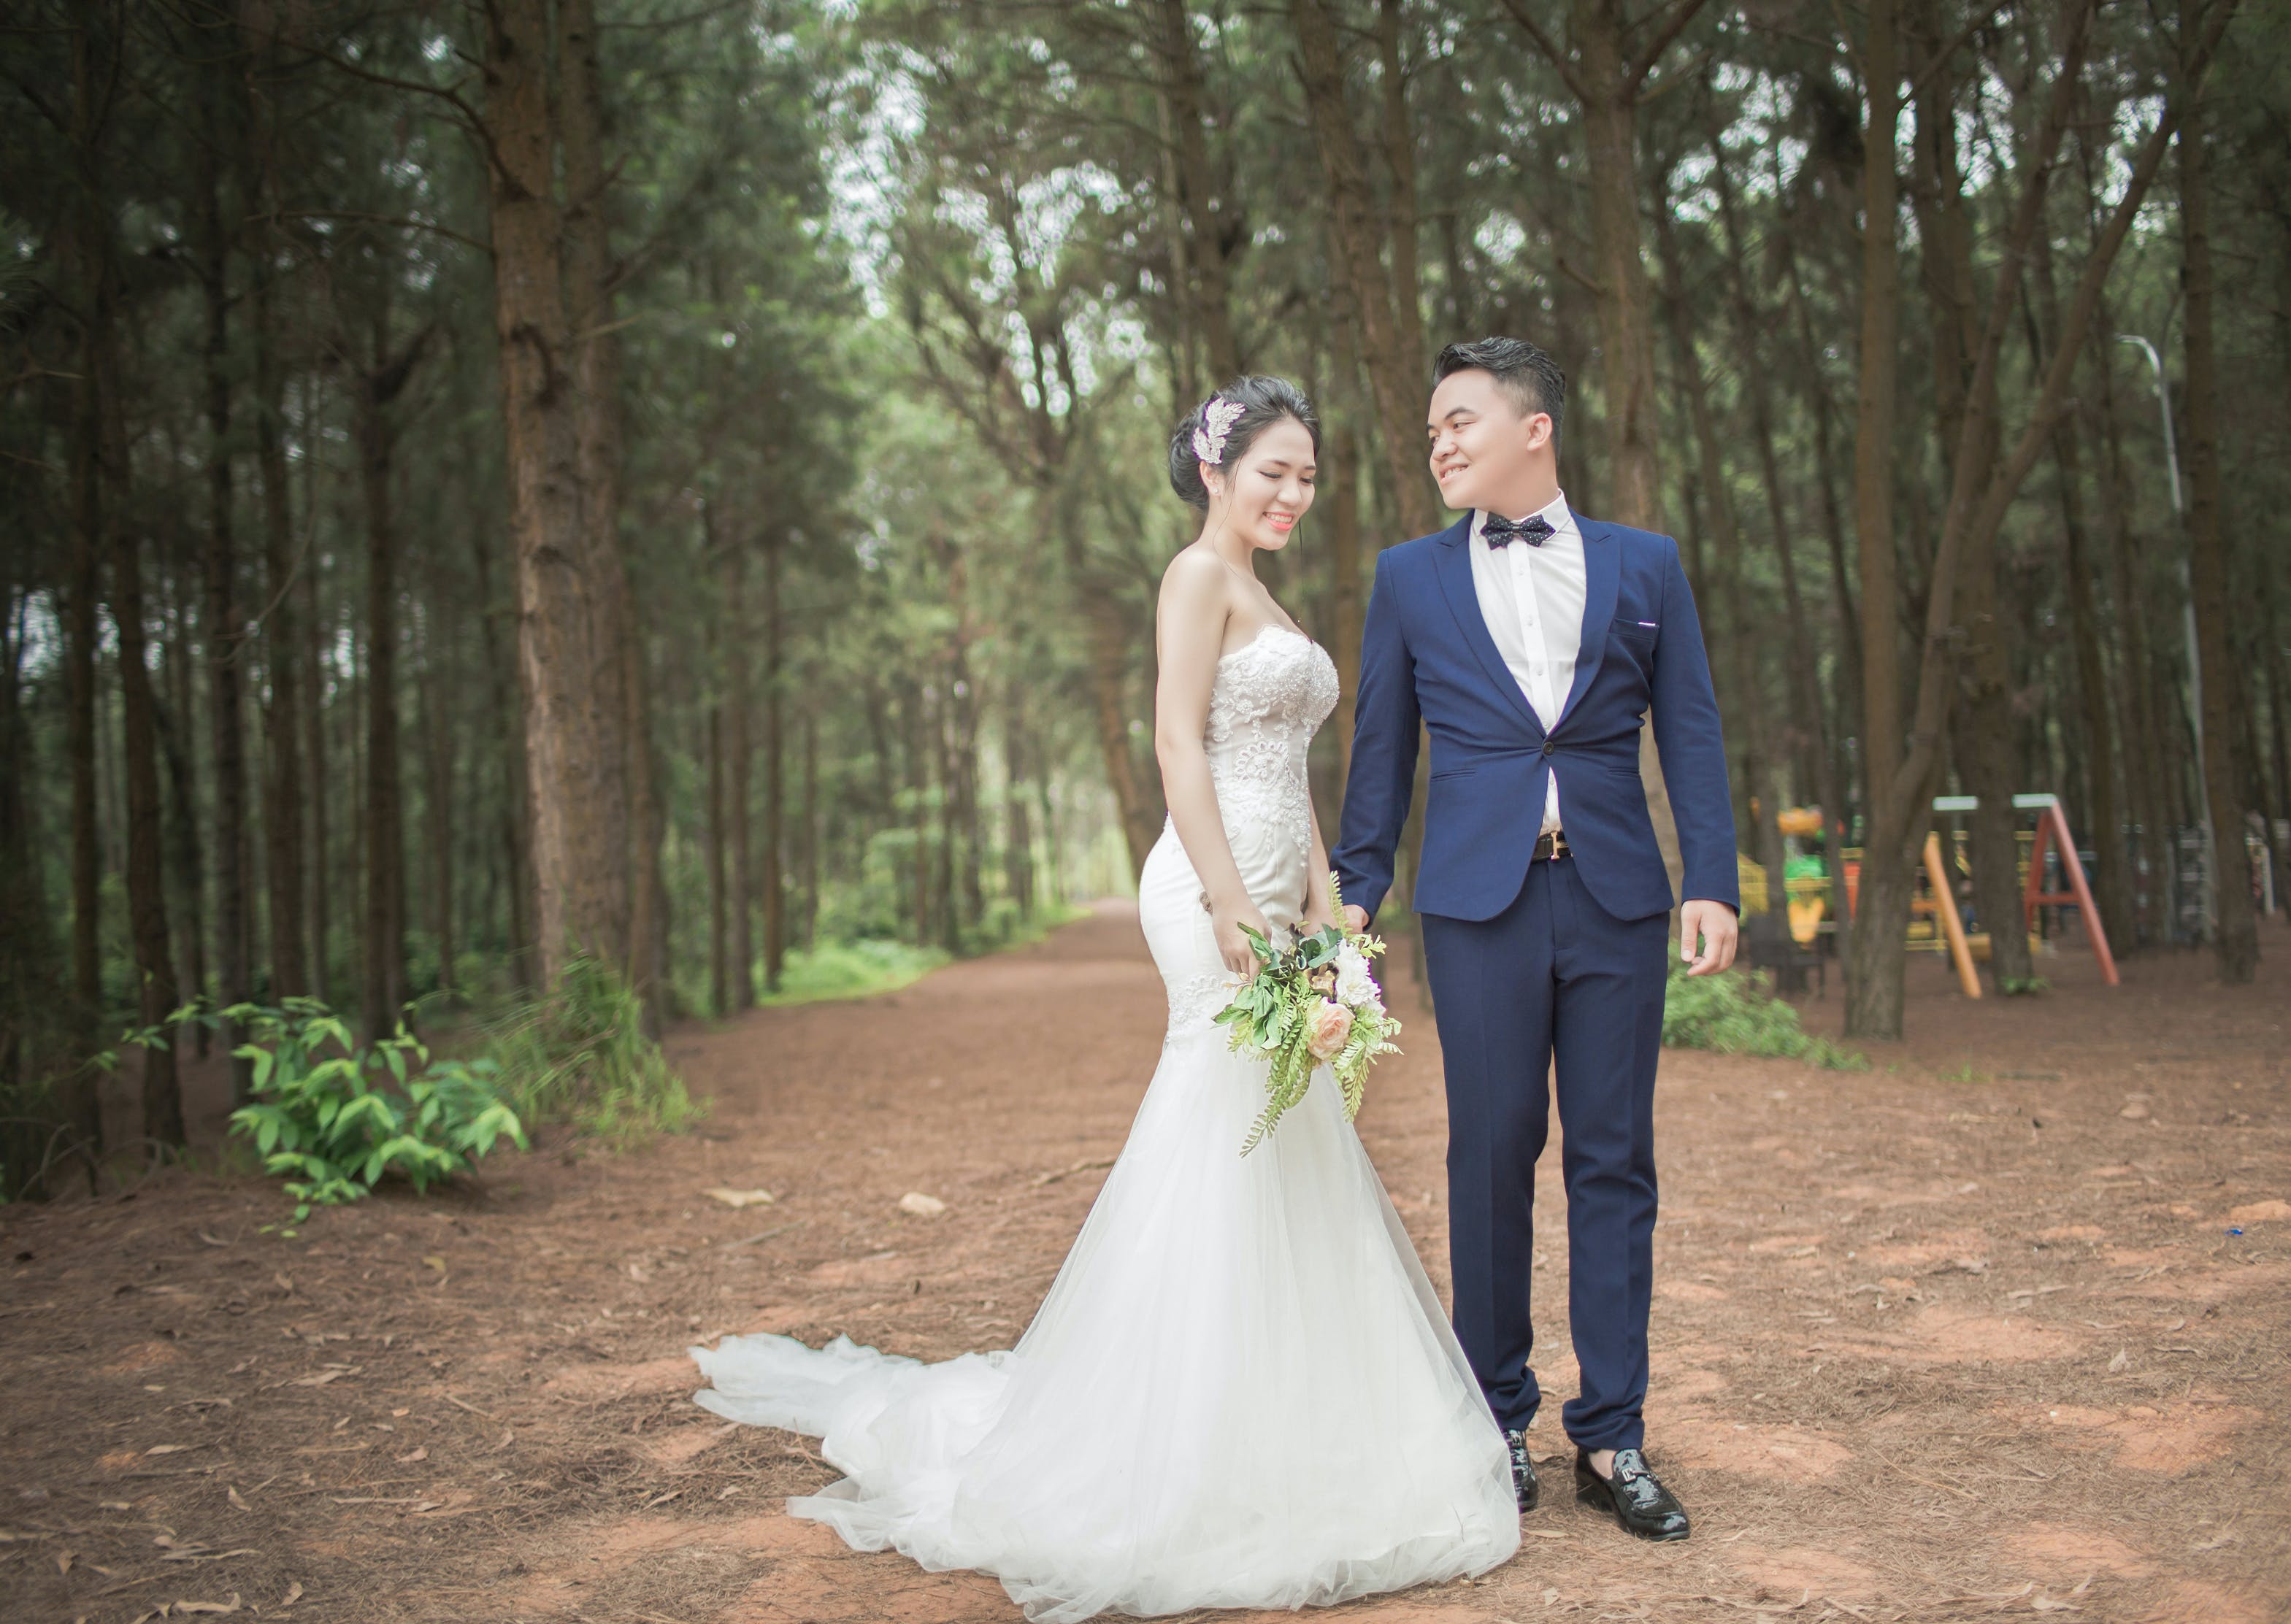 Wedding Couples Between Tall Trees